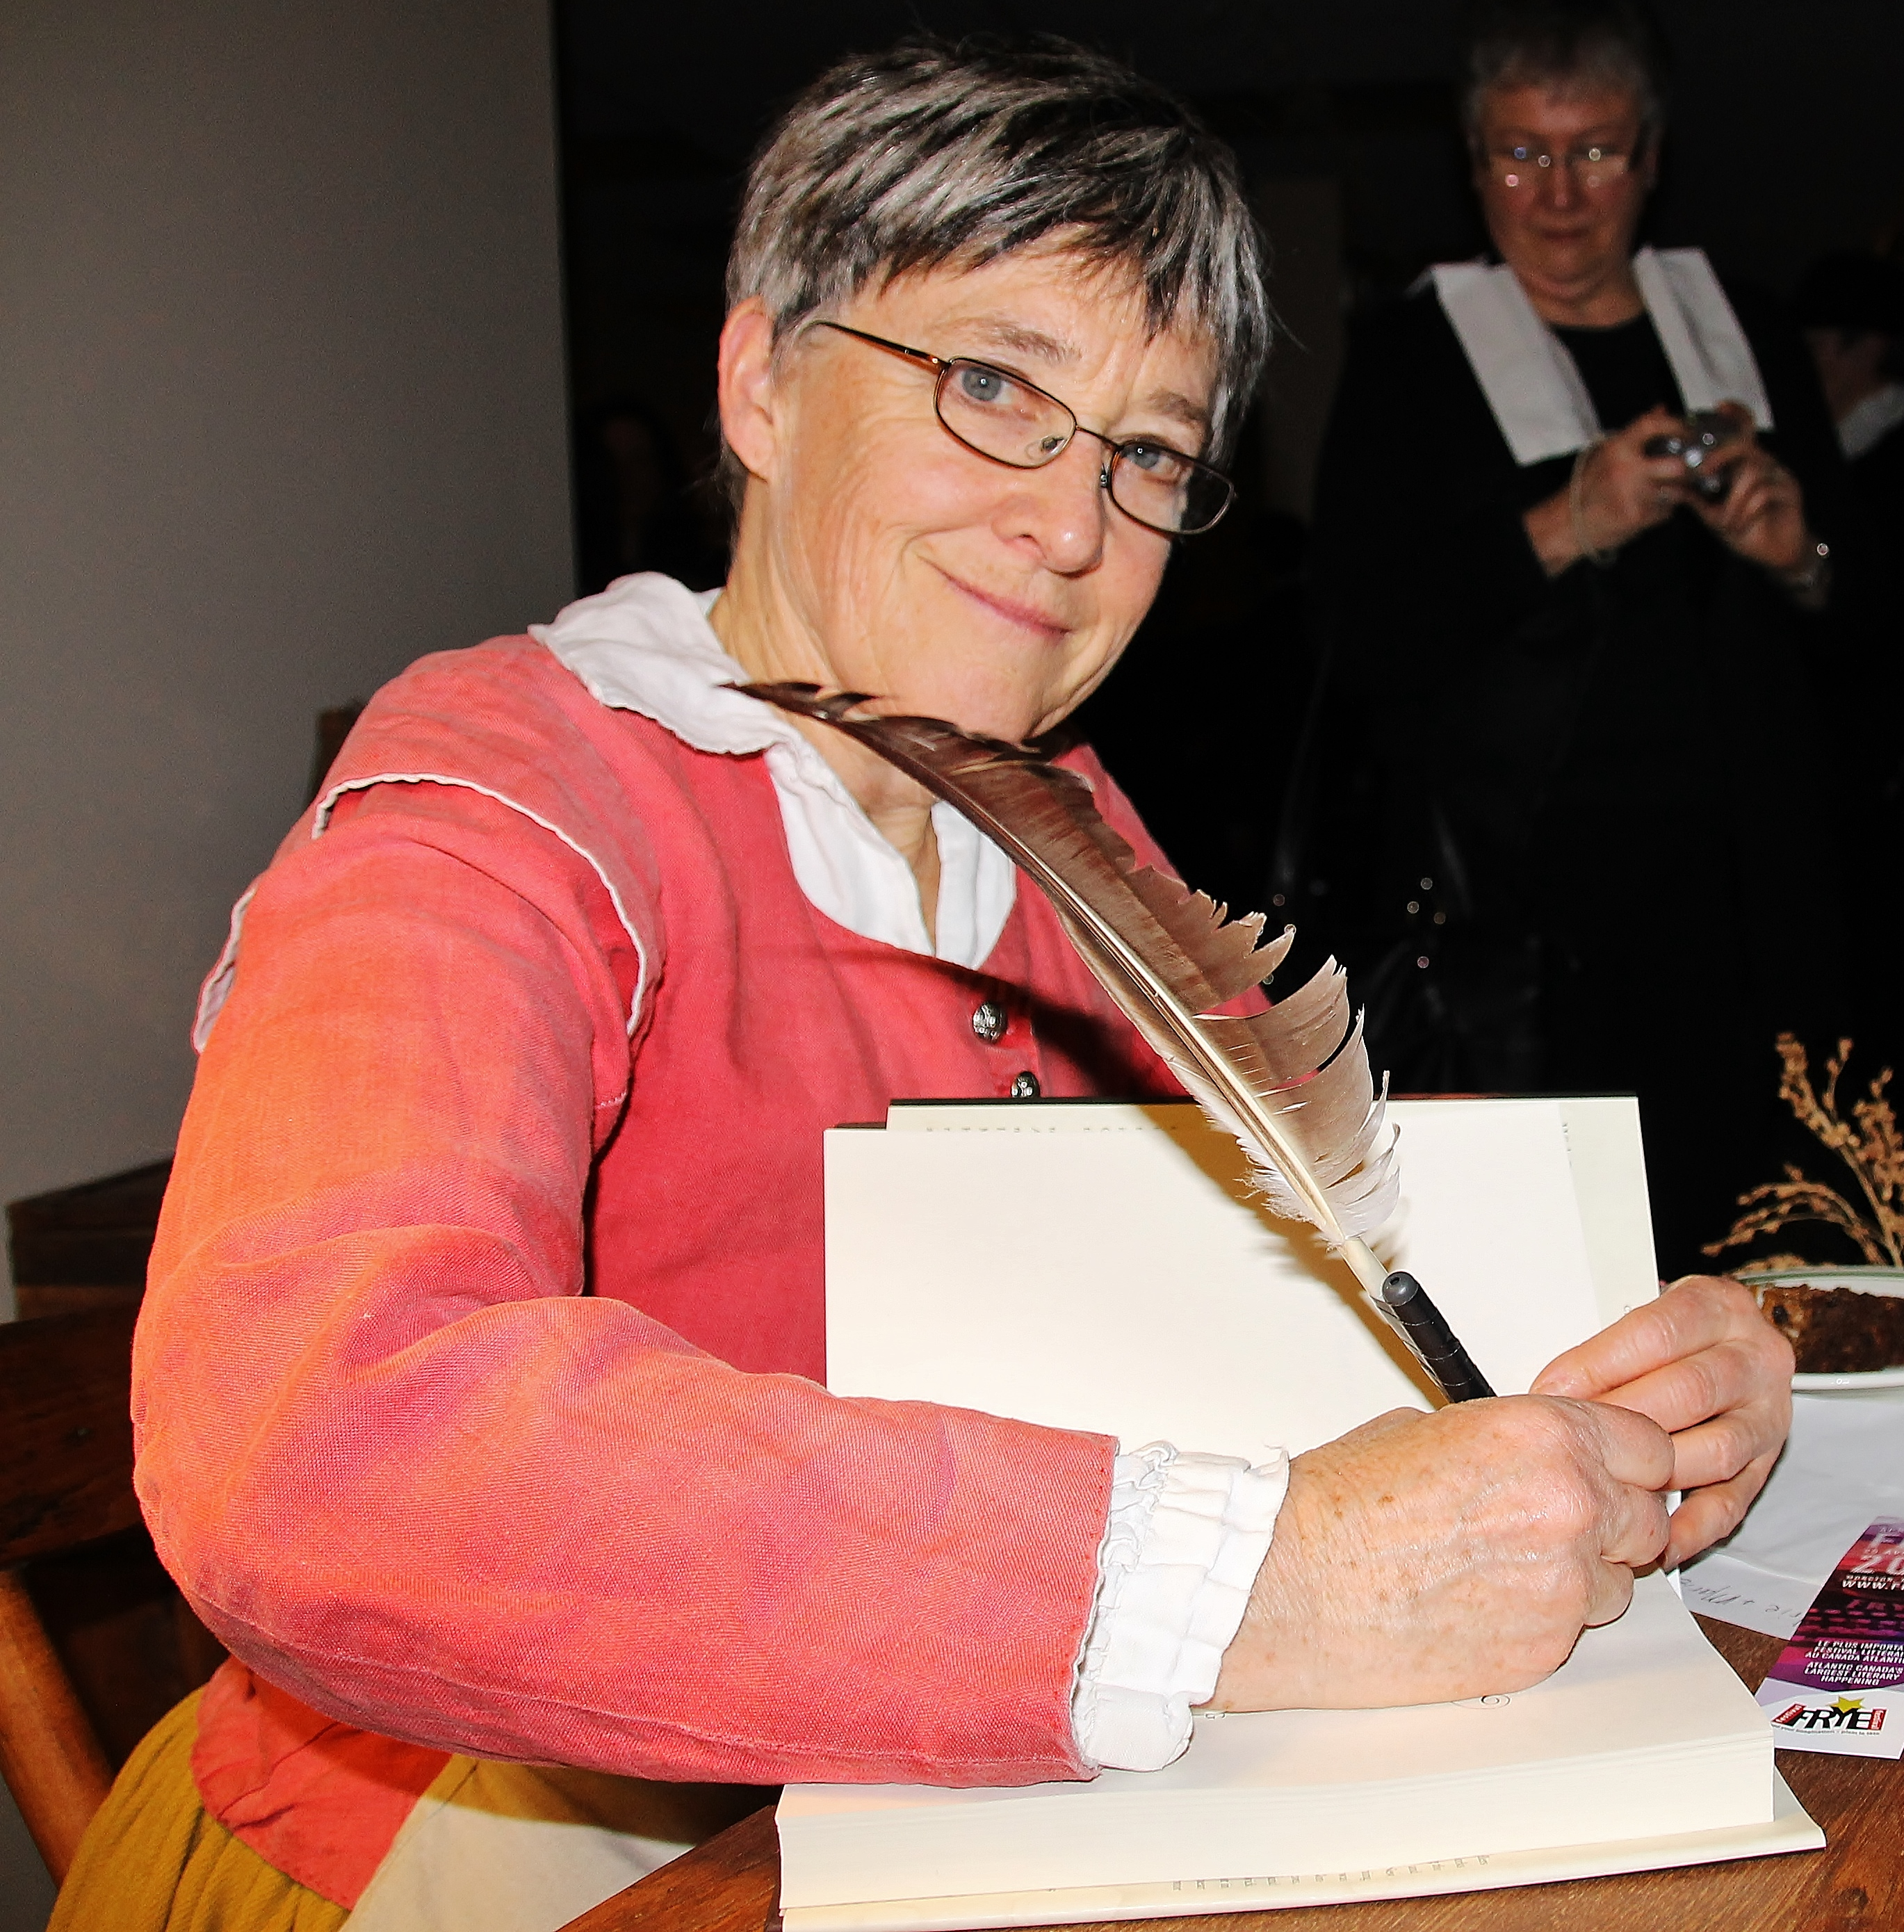 Wearing a costume lent to her by the Plymouth Plantation (Massachusetts), Beth Powning signs copies of A Measure of Light, which focuses on the remarkable life of Mary Dyer, a Puritan who fled persecution in 17th century England, only to be persecuted again in New England after joining the Quaker movement.